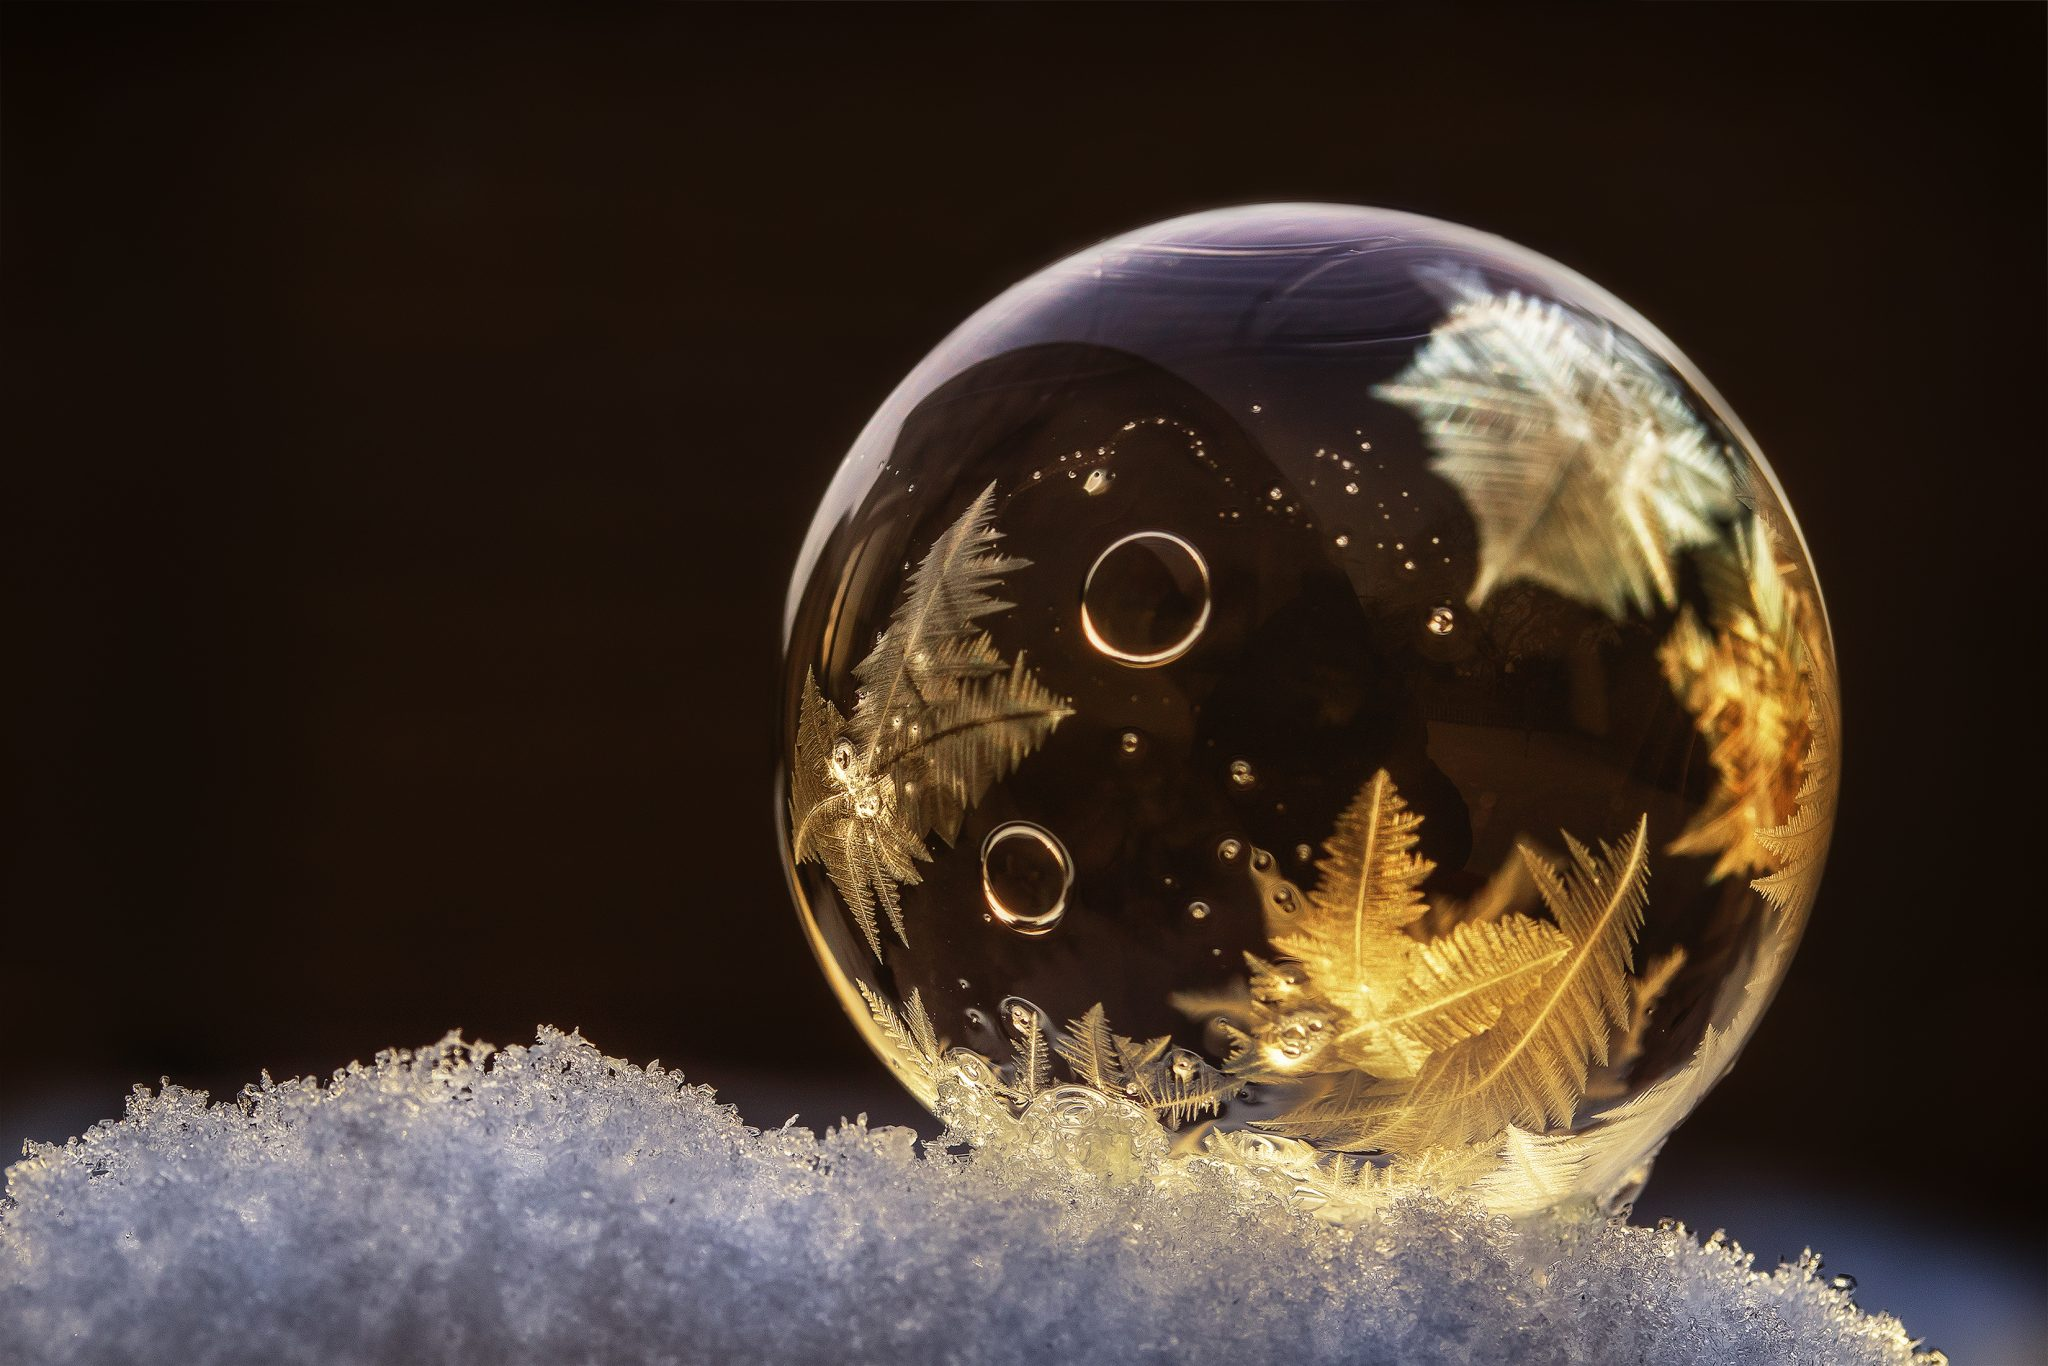 Snow day activities - frozen bubble